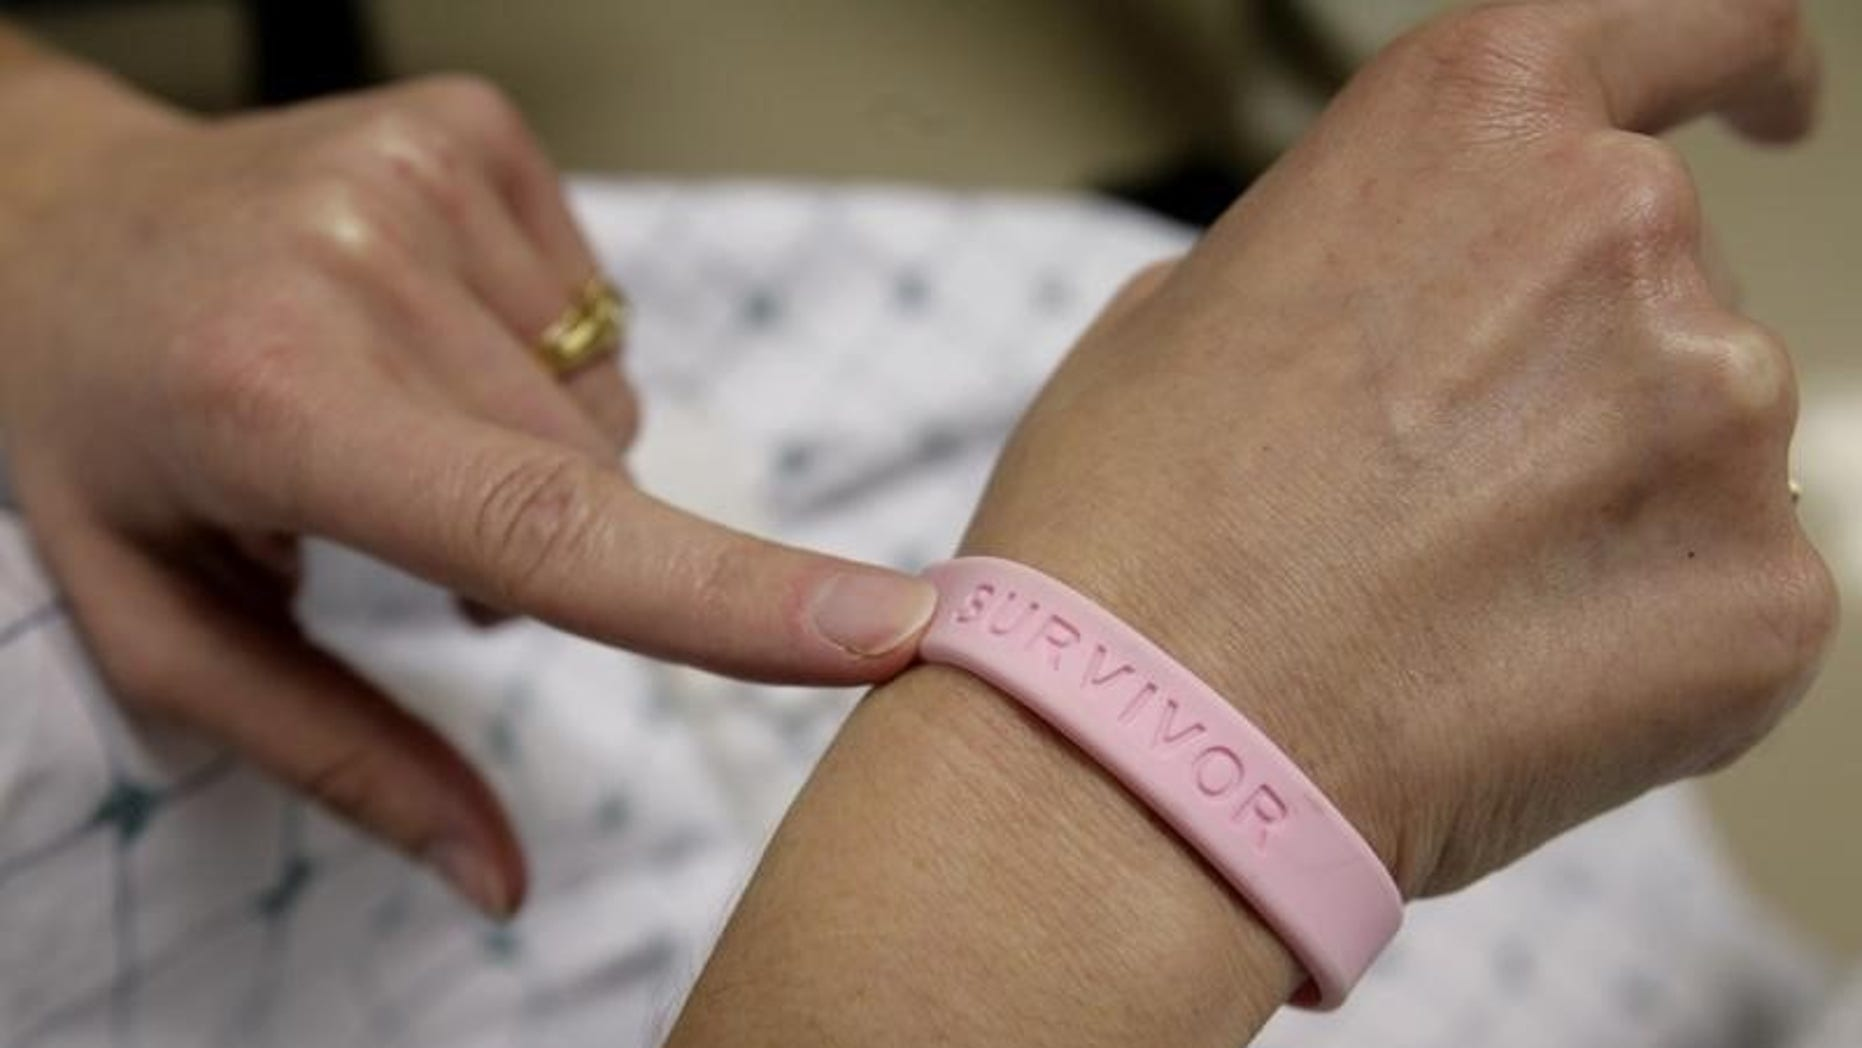 After three operations and four rounds of chemotherapy at Georgetown University Hospital, cancer patient Deborah Charles shows off her breast cancer survivor bracelet during a hospital appointment in Washington May 23, 2007. REUTERS/Jim Bourg